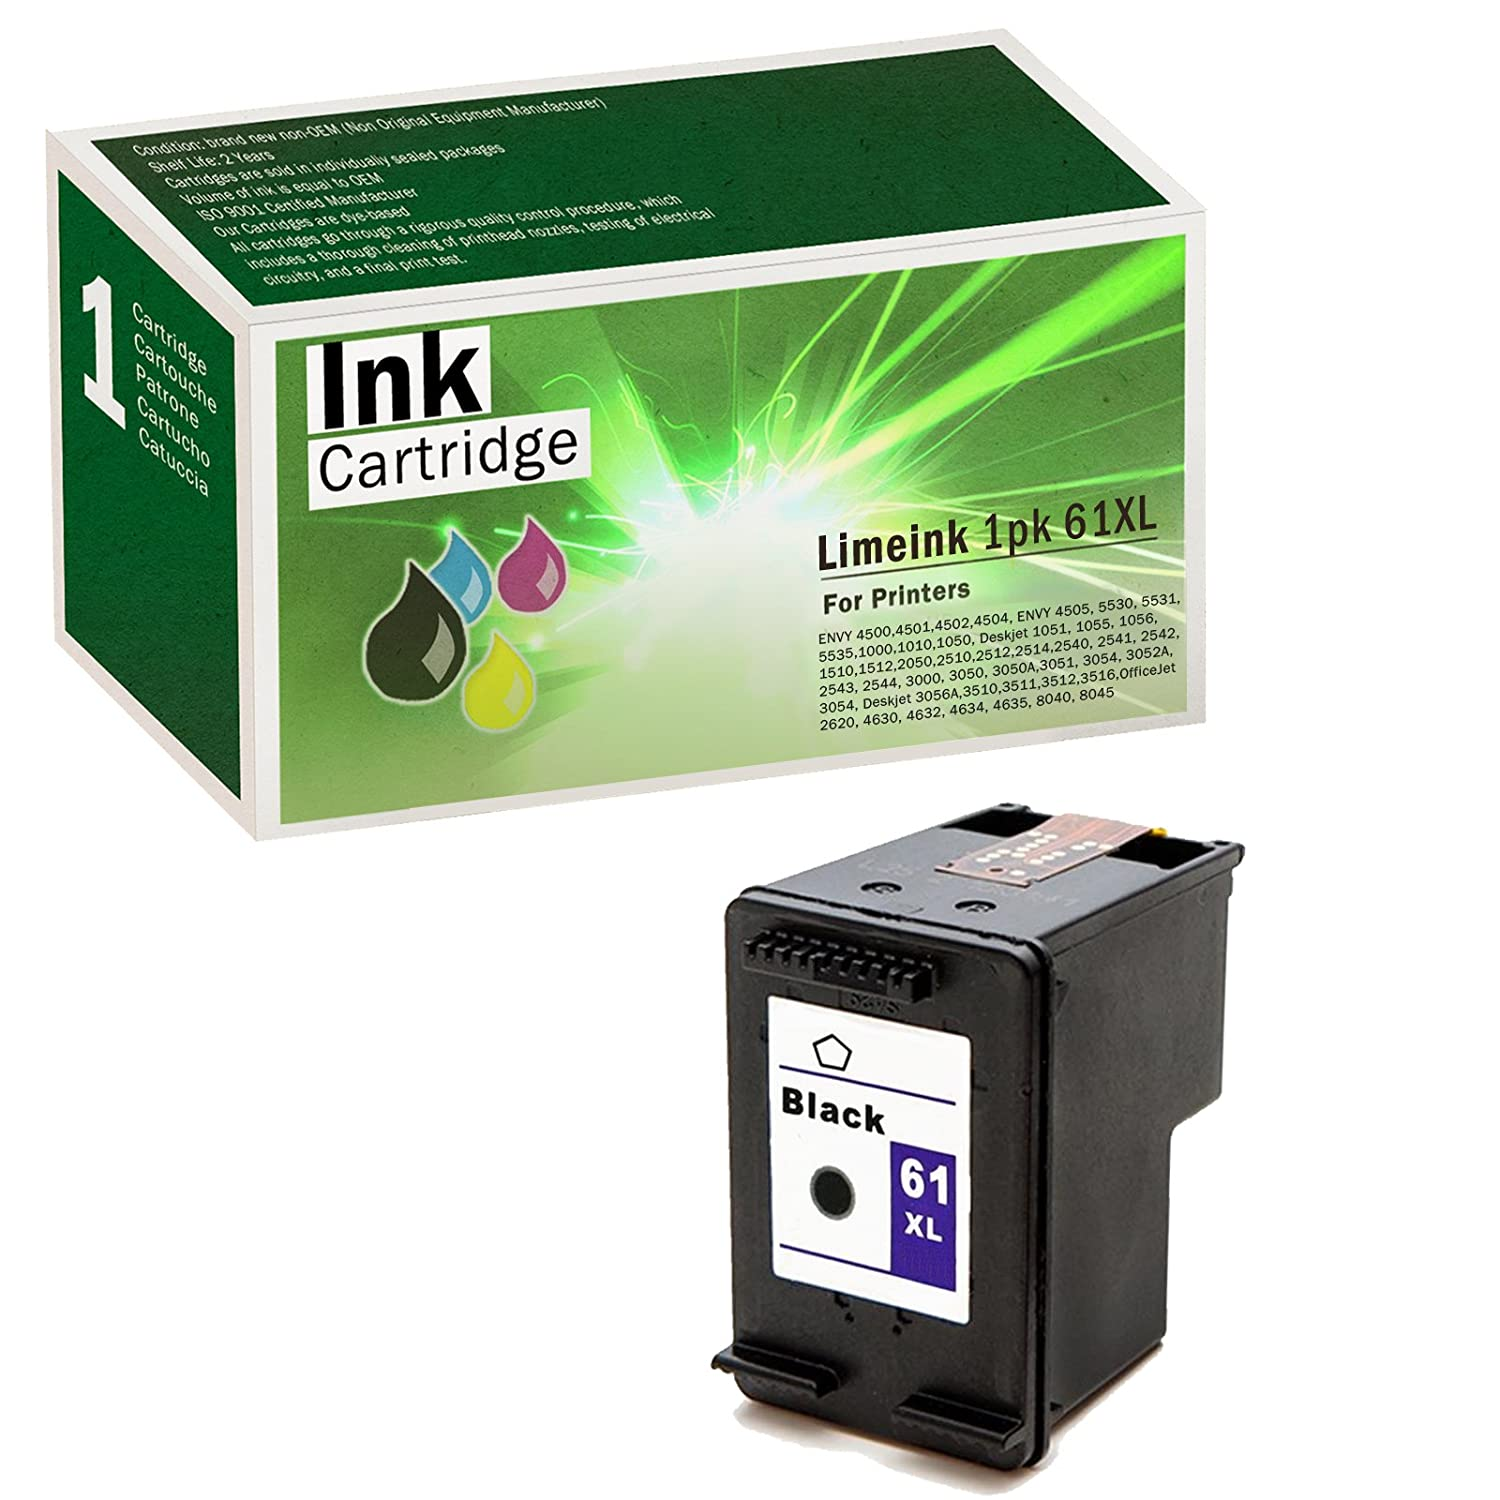 Limeink Remanufactured Ink Cartridge Replacement 61XL High Yield for 1000 1010 1050 1055 1510 1512 2000 2050 2510 2512 2514 2540 2542 2543 2549 3000 3050 ...